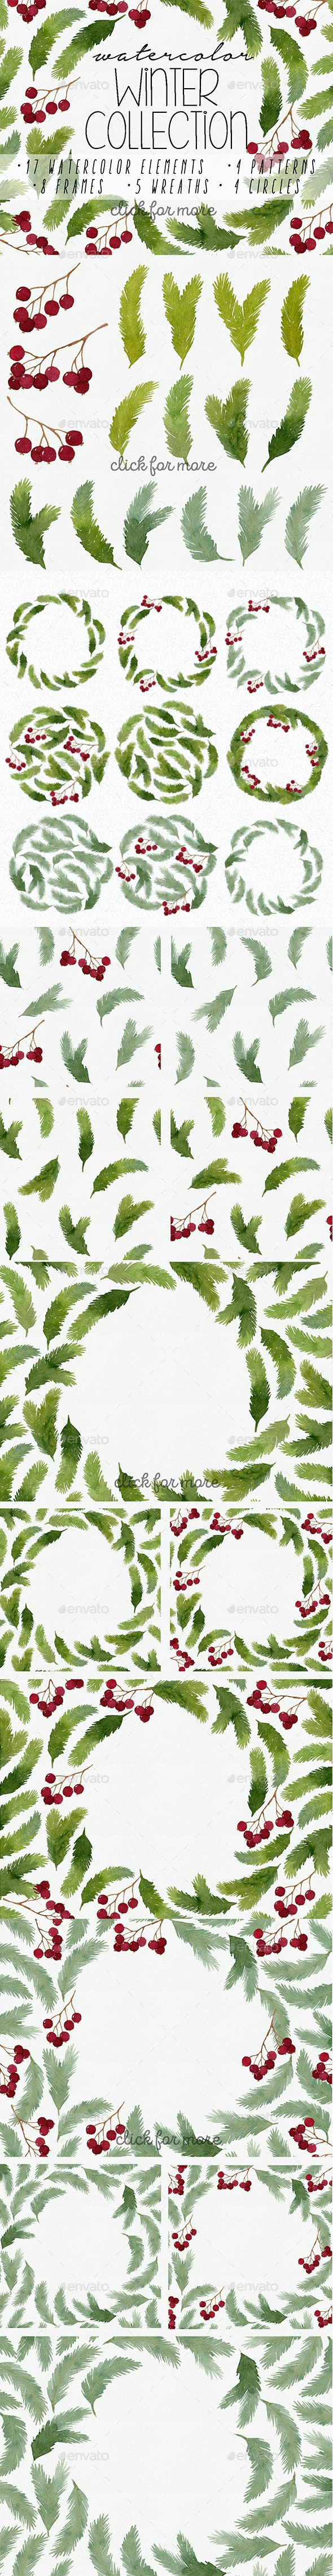 Watercolor Winter Collection - Nature Backgrounds